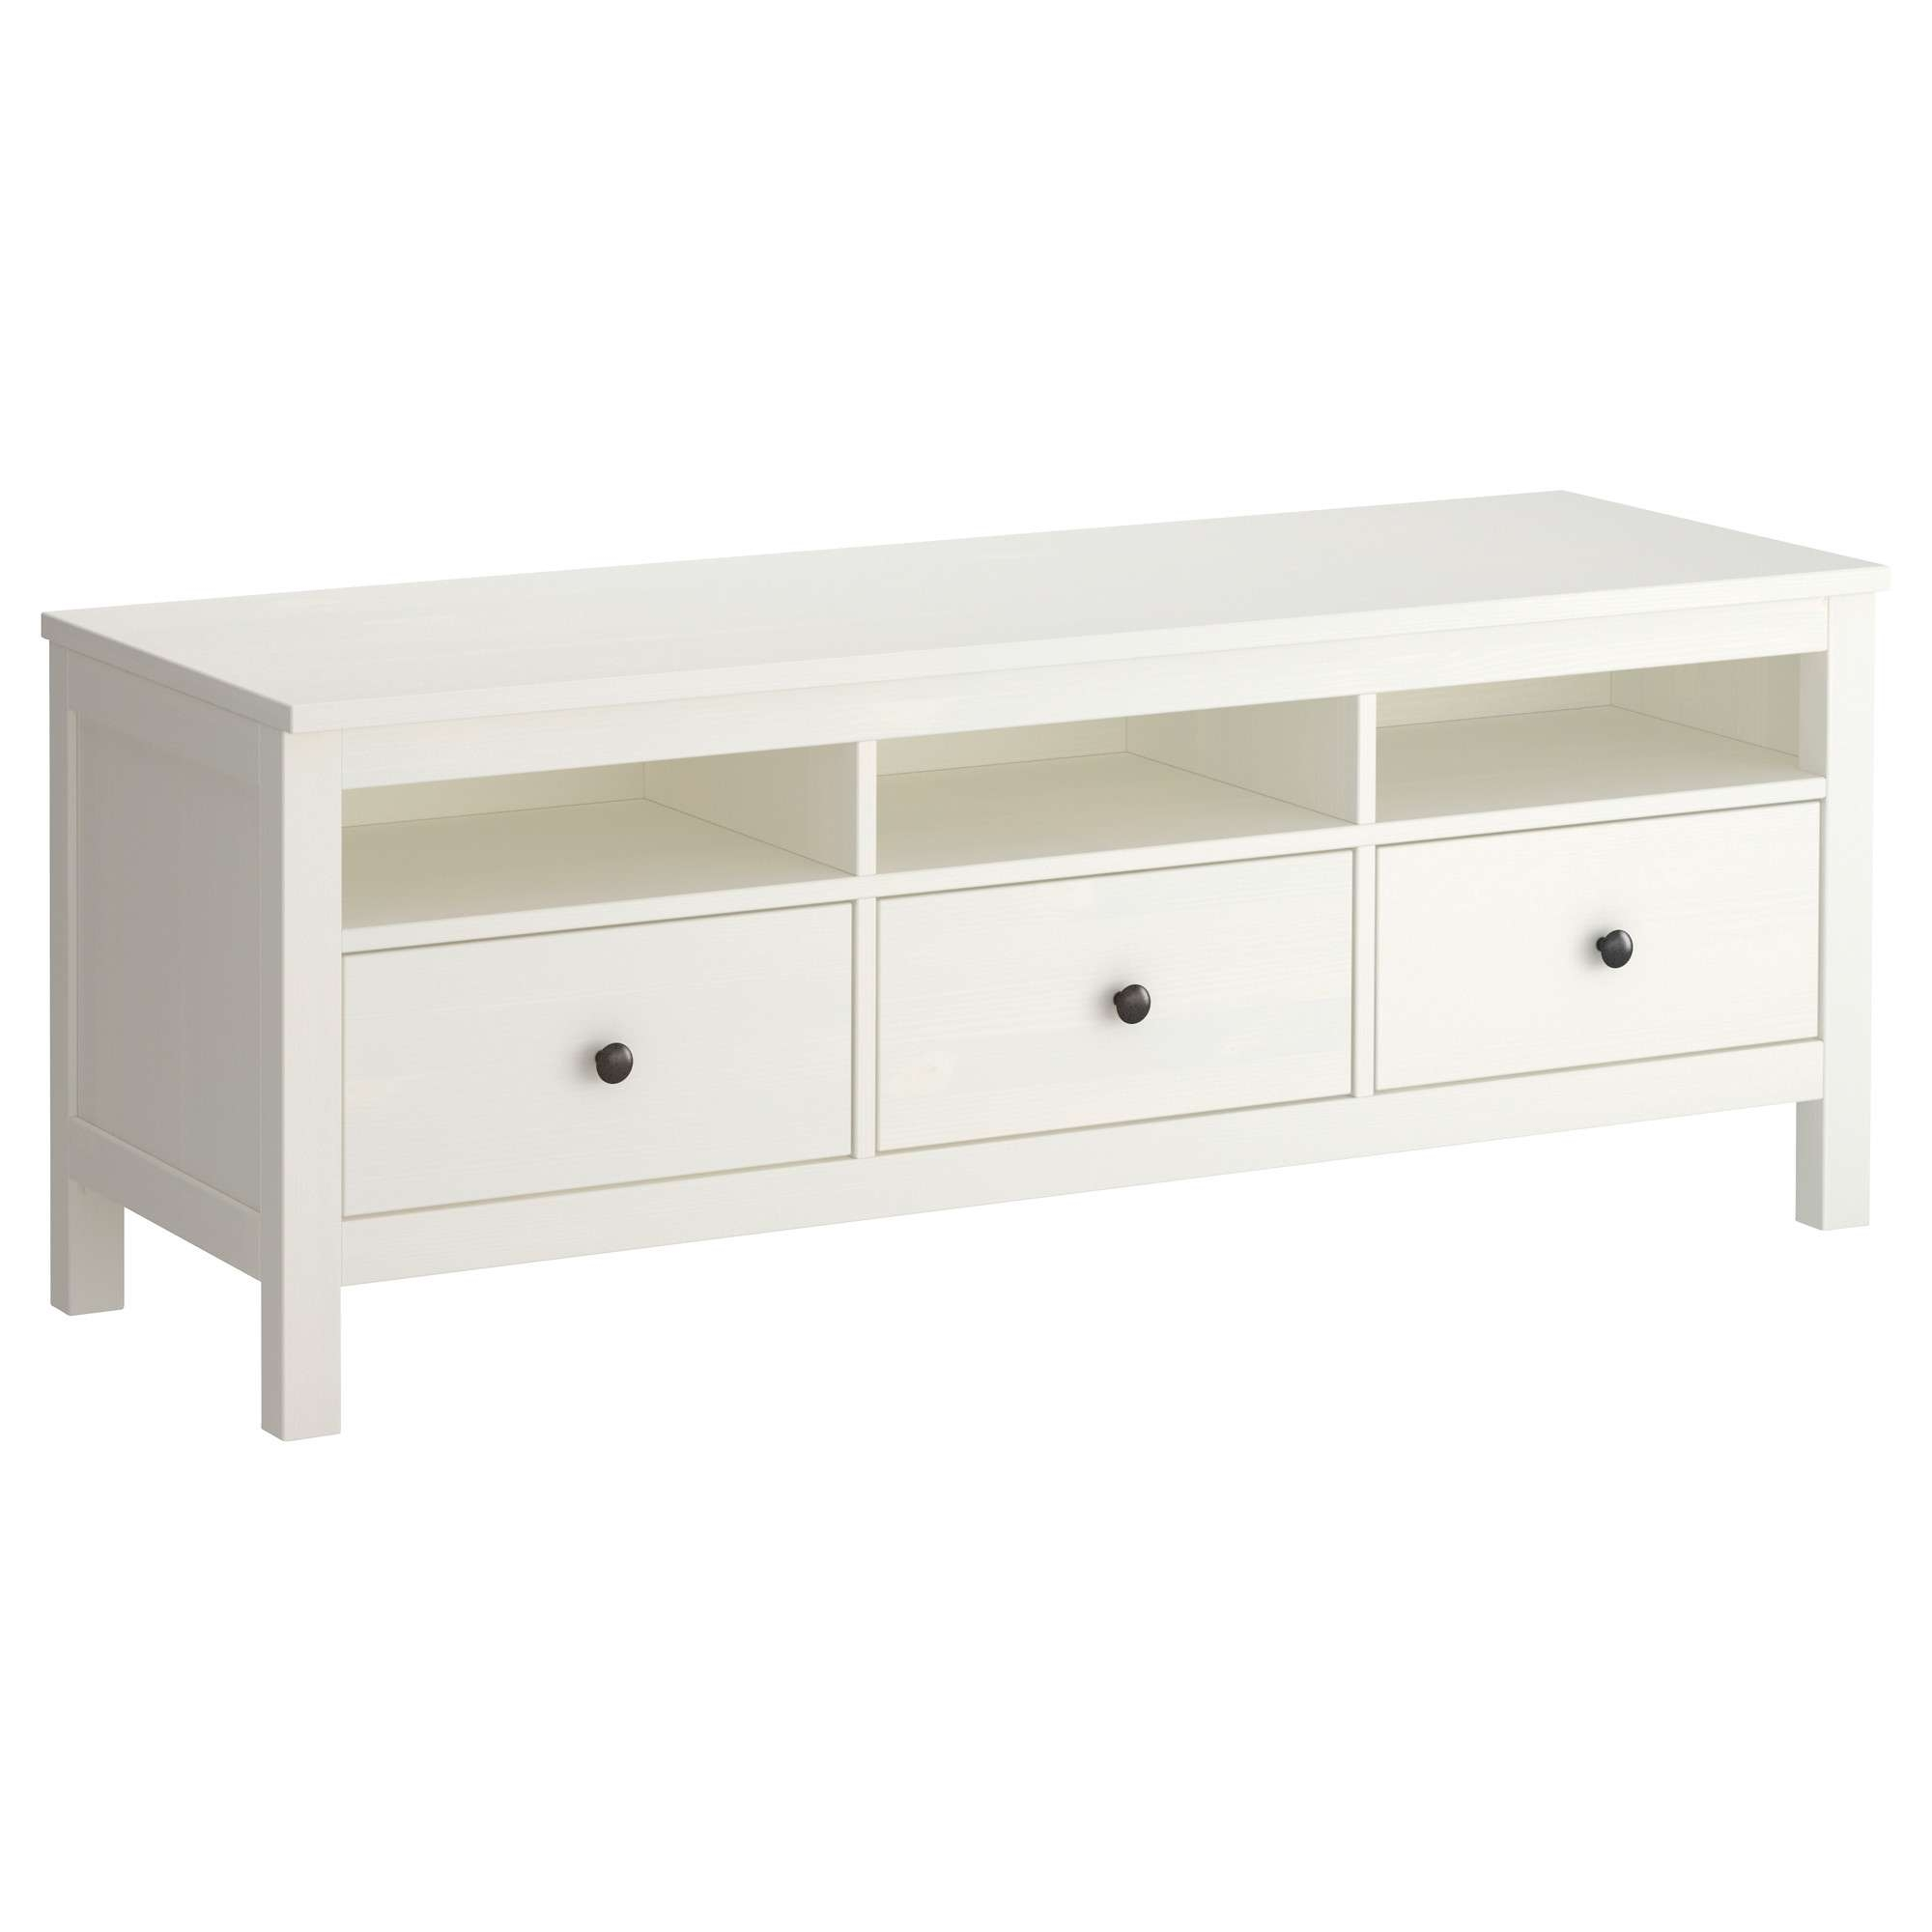 Tv Stands & Tv Units | Ikea Throughout White Wooden Tv Stands (View 12 of 20)